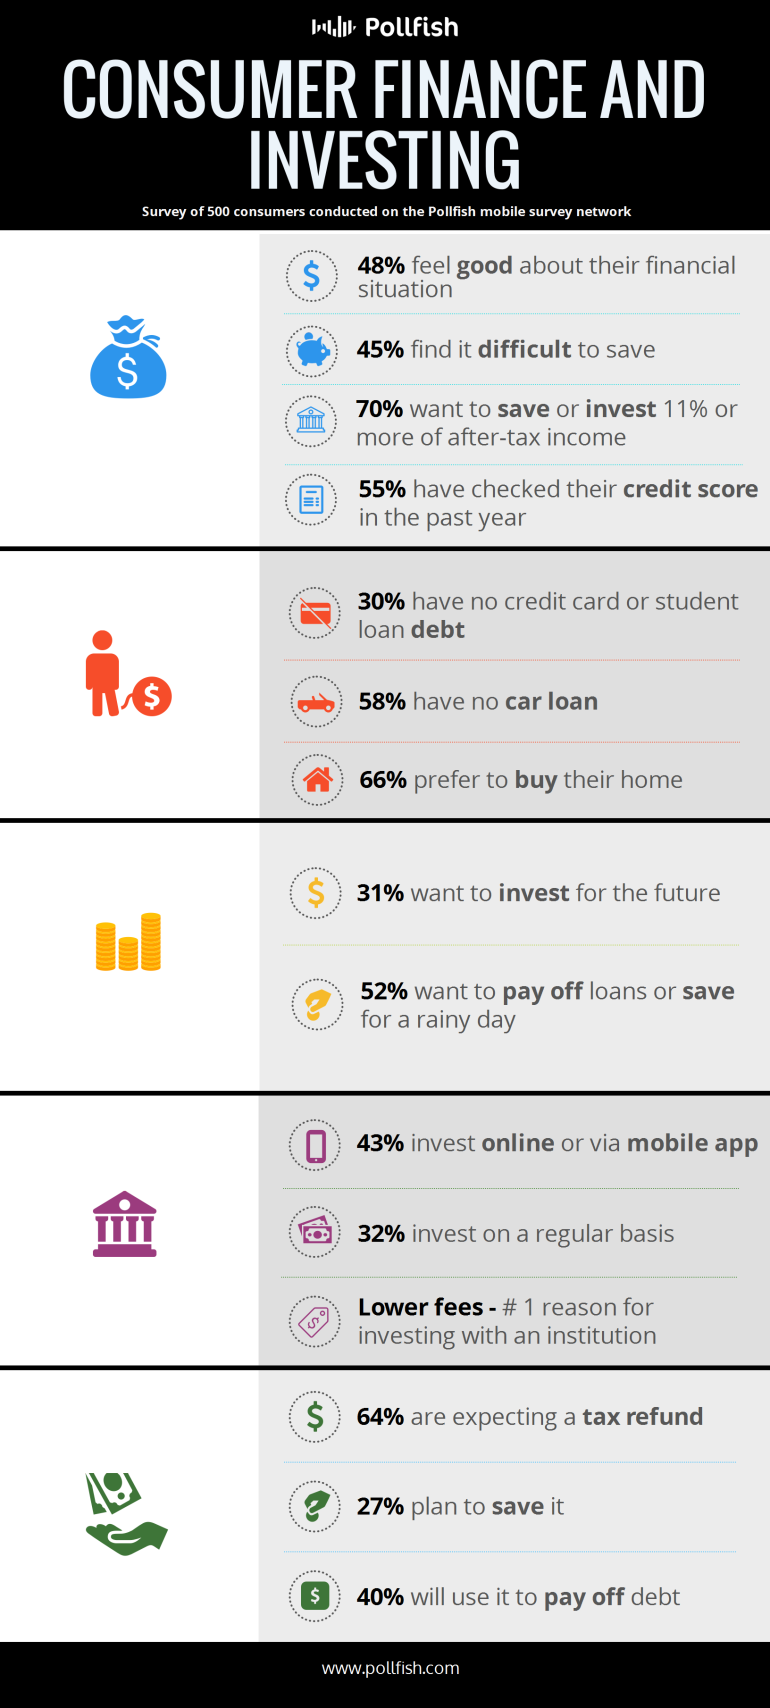 Pollfish Mobile Survey of Consumer Finance and Investing